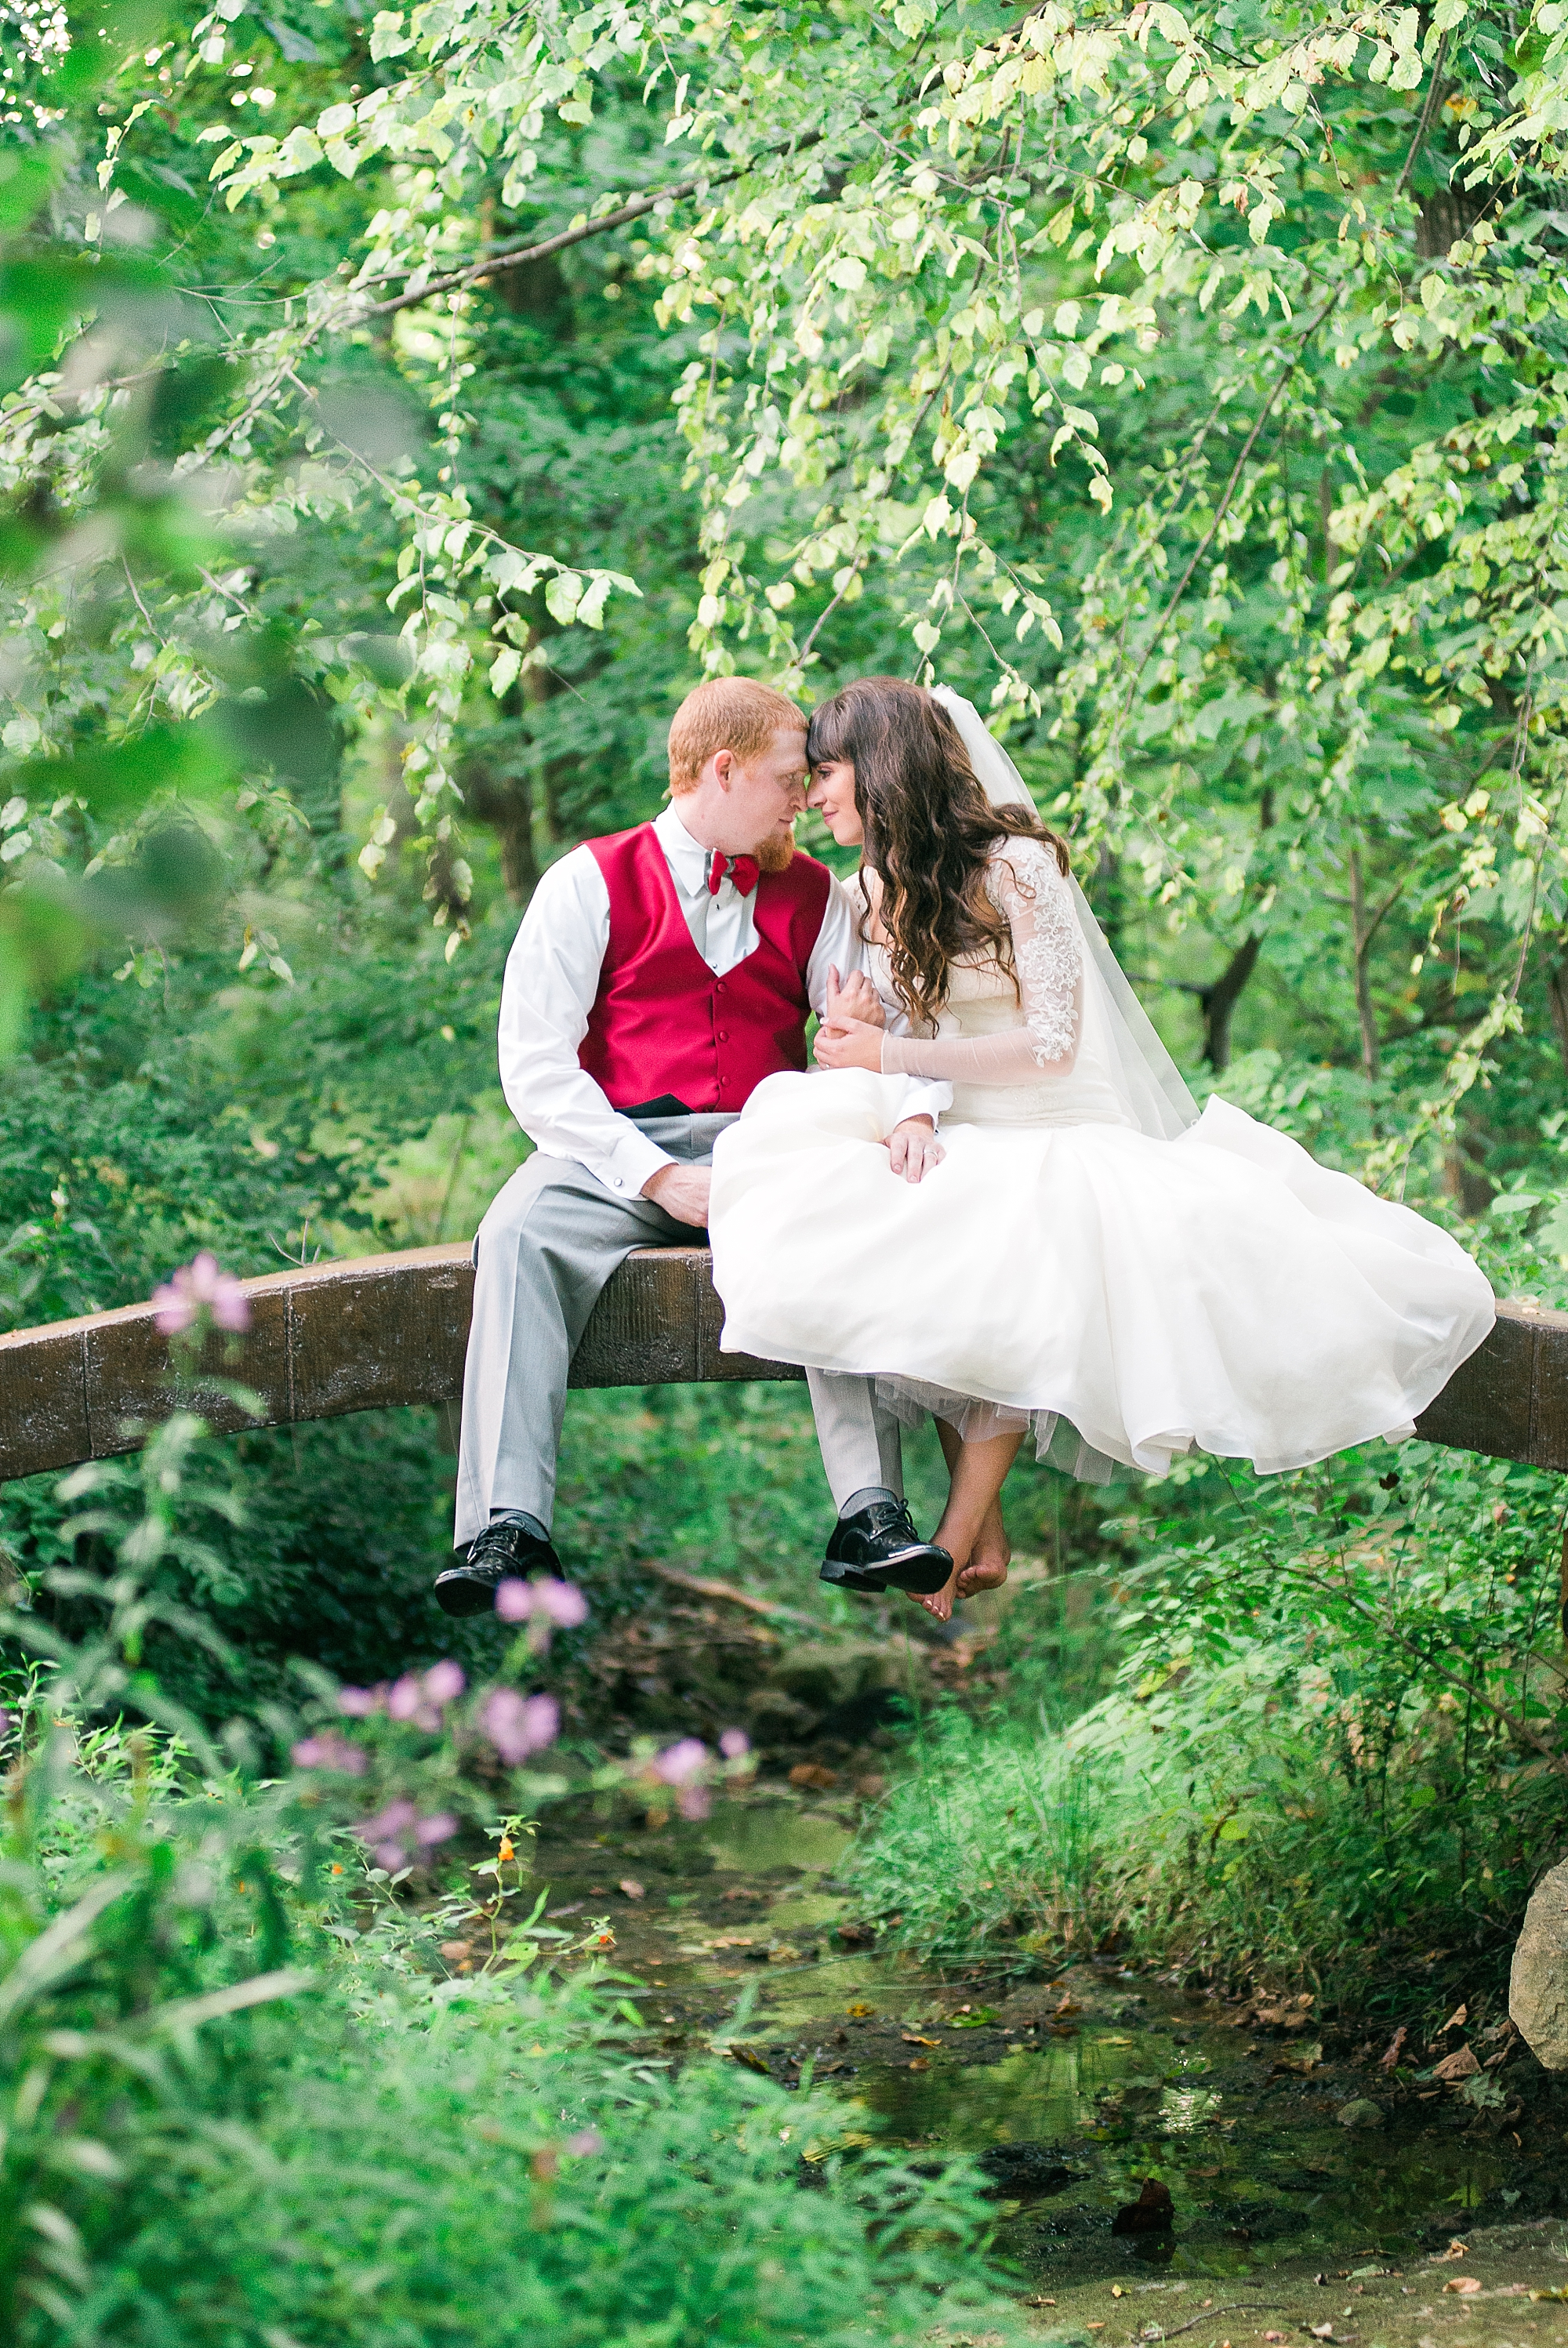 This bridge over the little creek was so magical! It couldn't have been a more perfect spot!